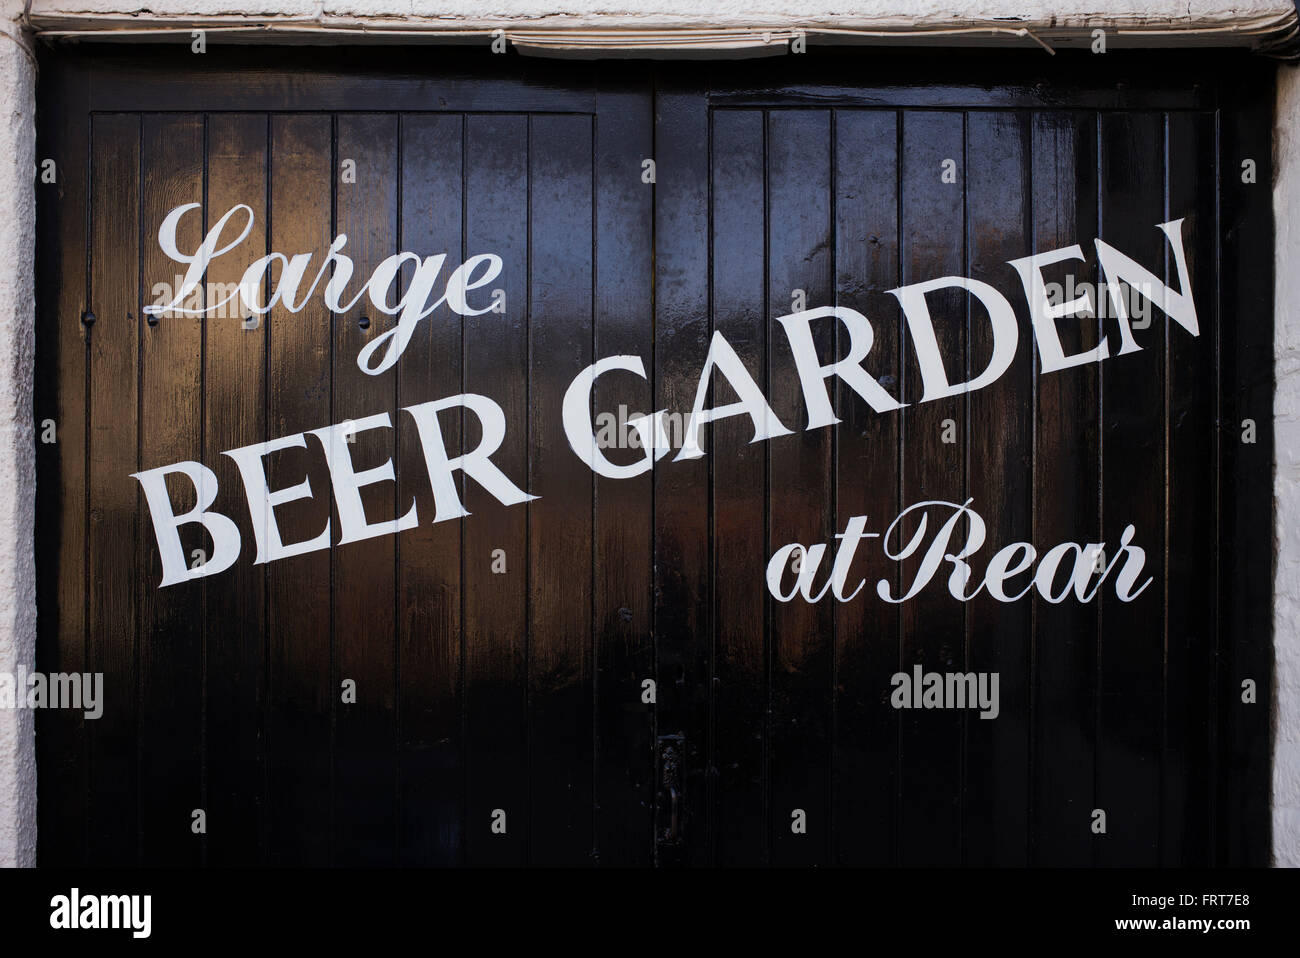 Large Beer Garden At Rear Sign Painted On A Pub Garage Doors Stock